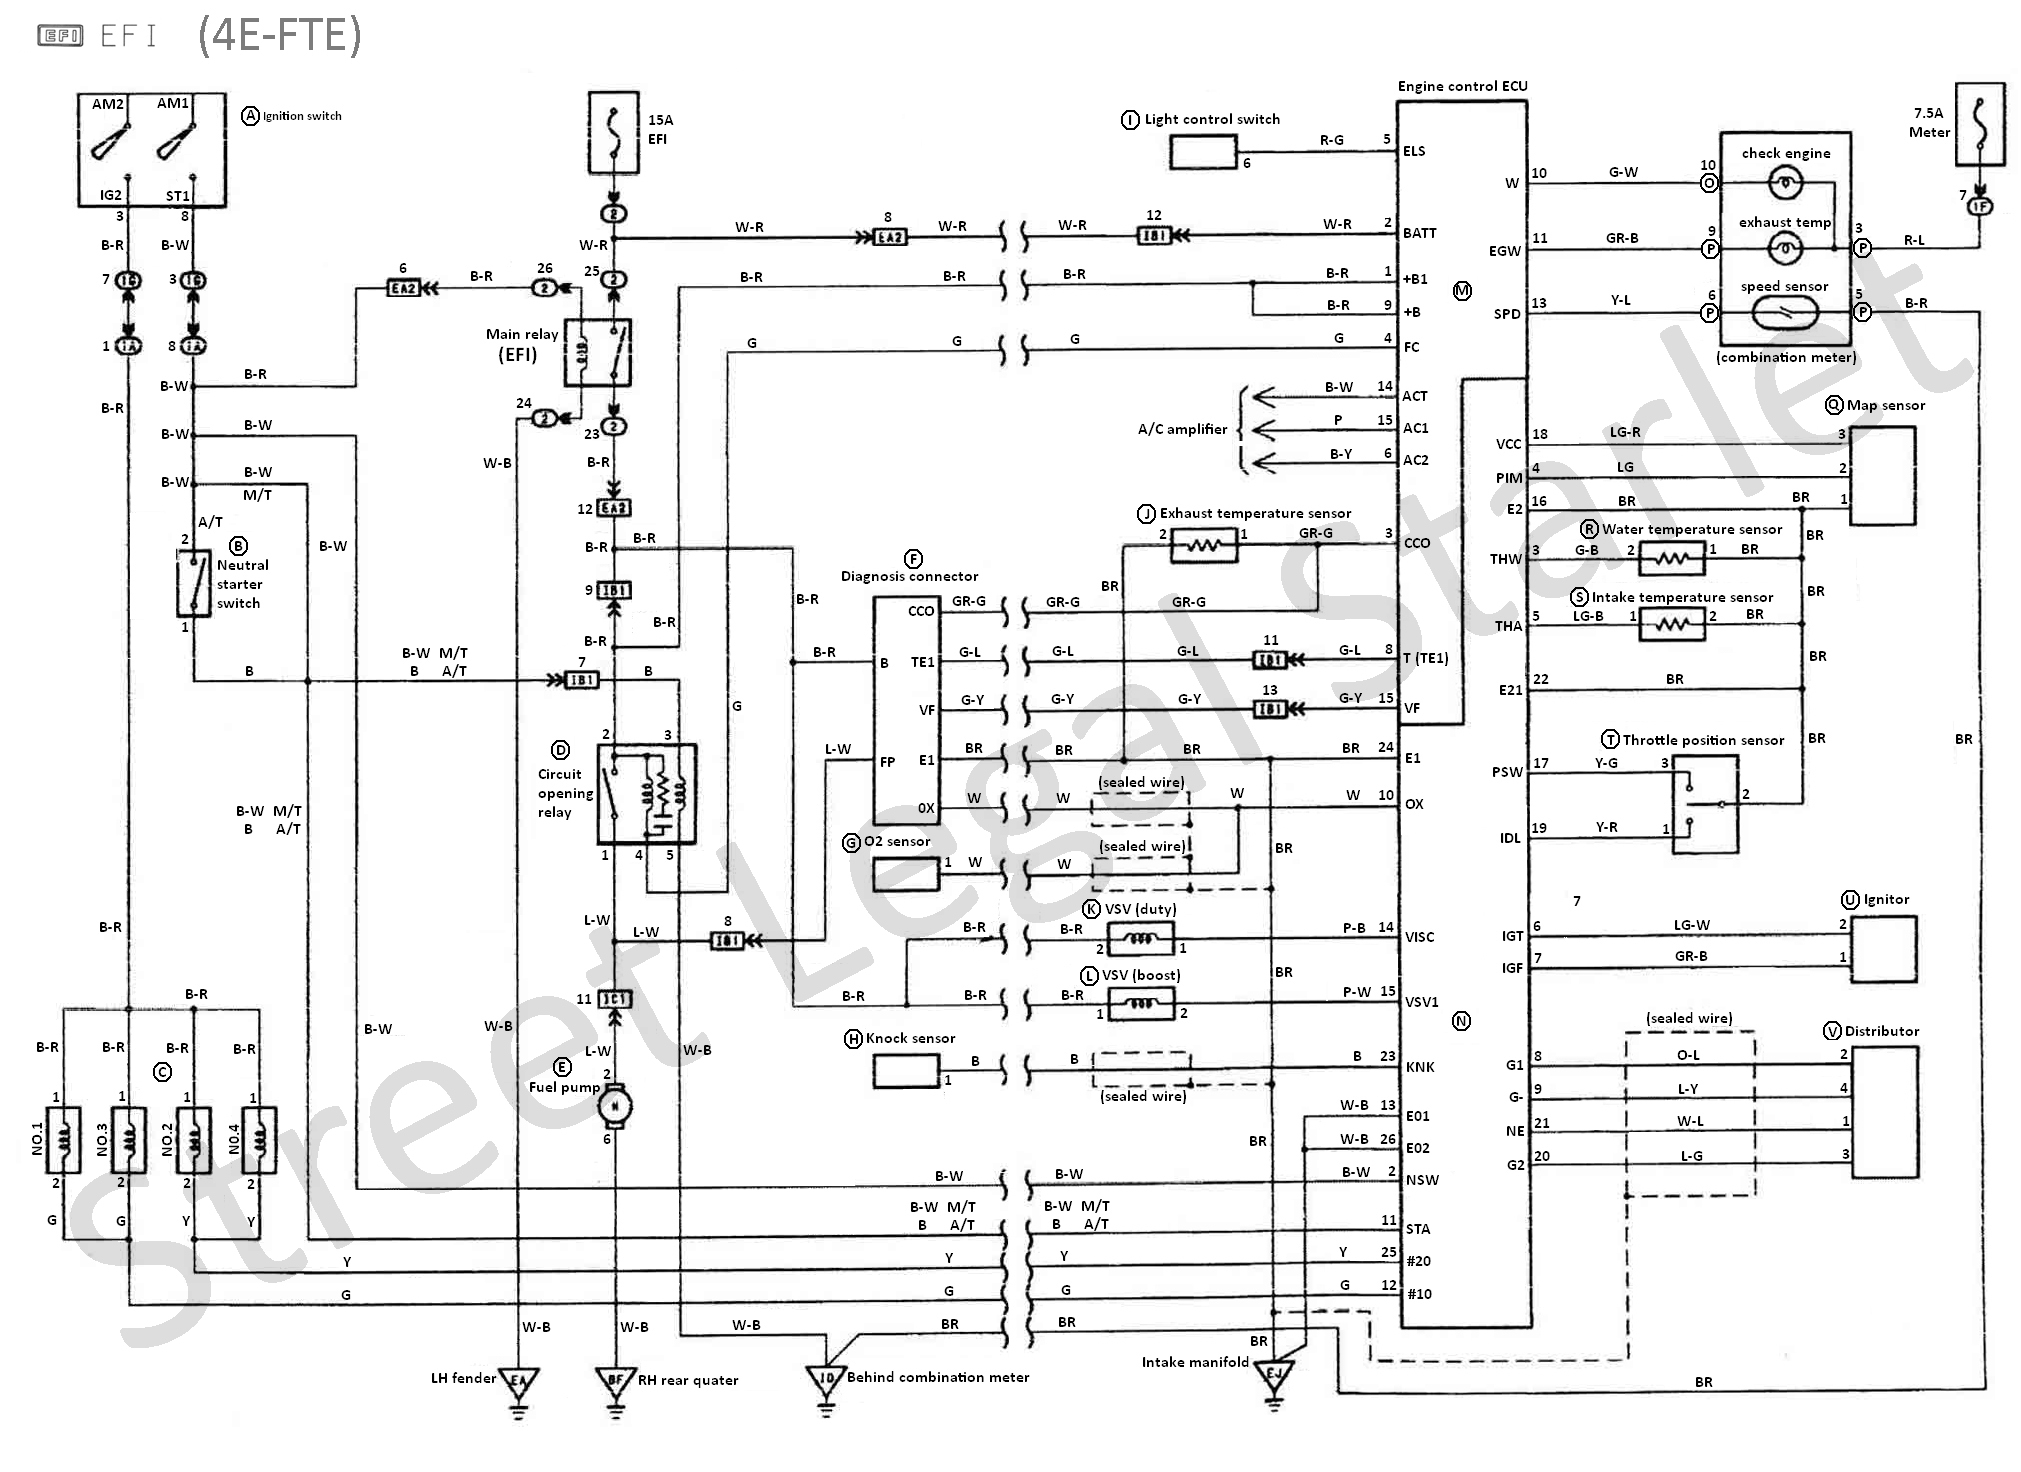 1982 Toyota Pickup Alternator Wiring Diagram Glanza Free Download Ecu Stateofindiana Co Additionally Including Starlet Dolgular